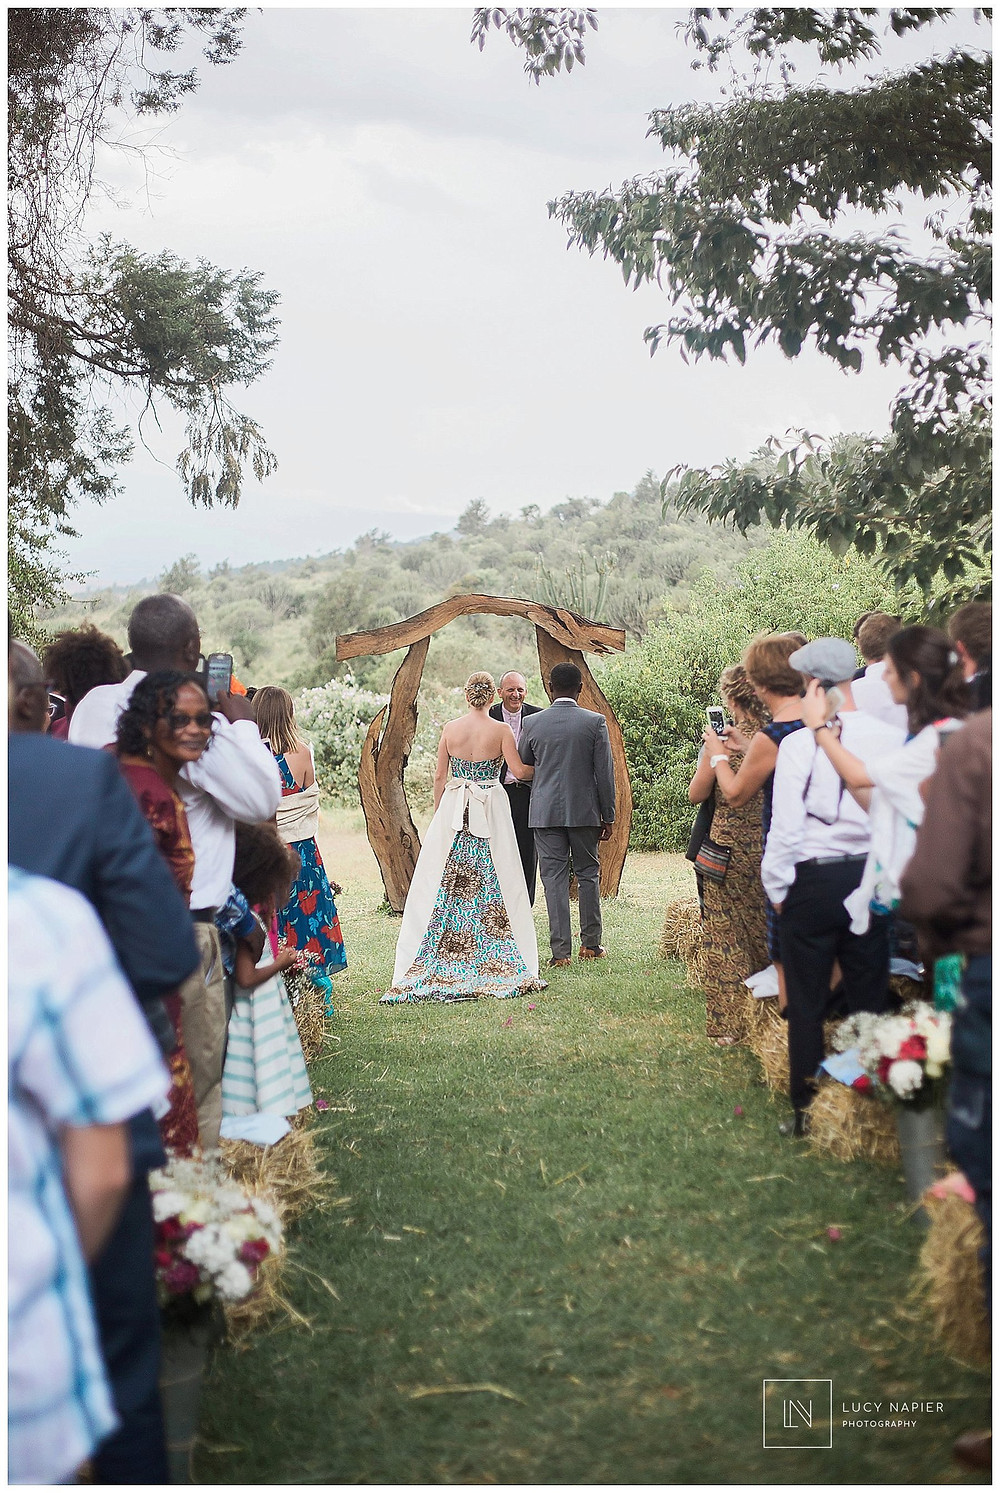 The bride and groom stand under an arch